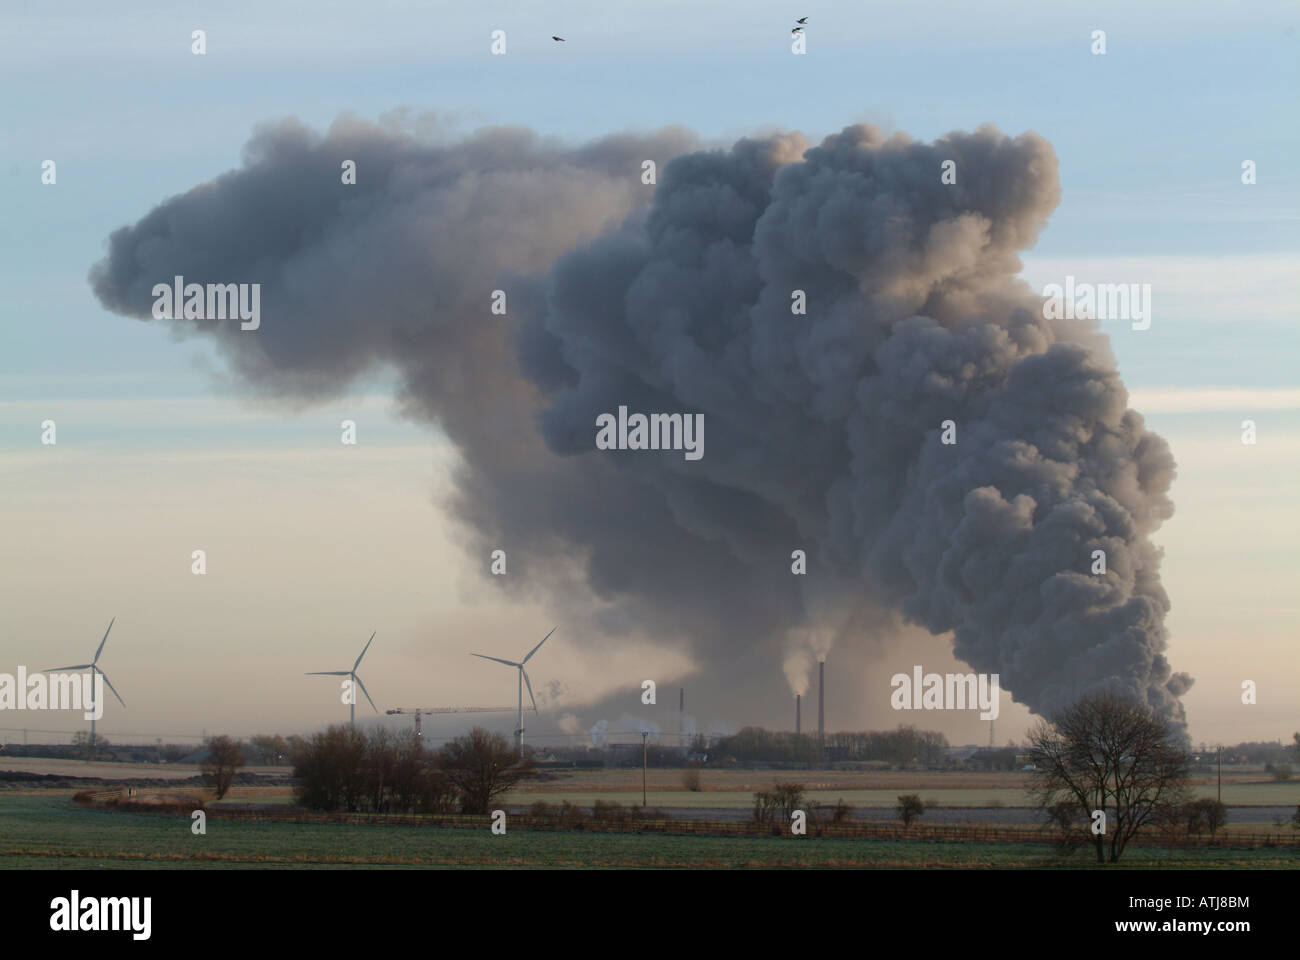 Pall of smoke from Abbey Warehouse fire - Stock Image